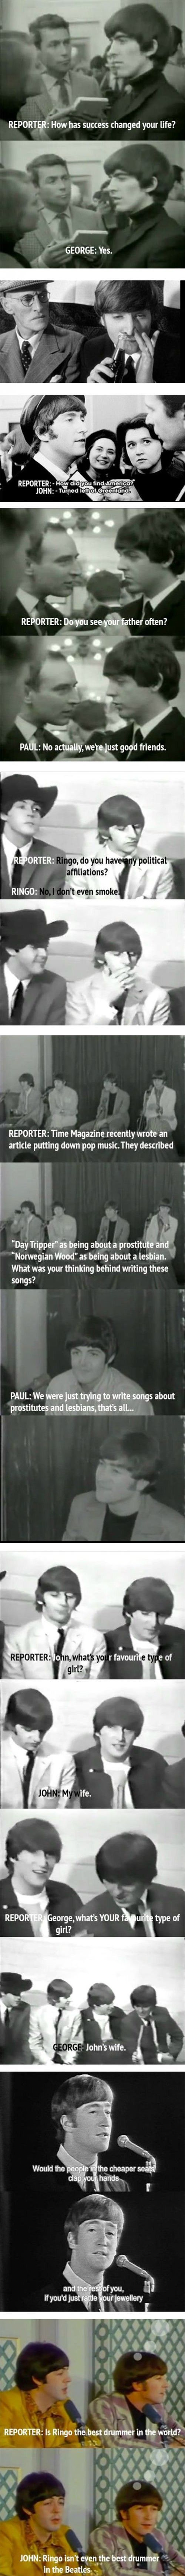 The Beatles were pretty funny.